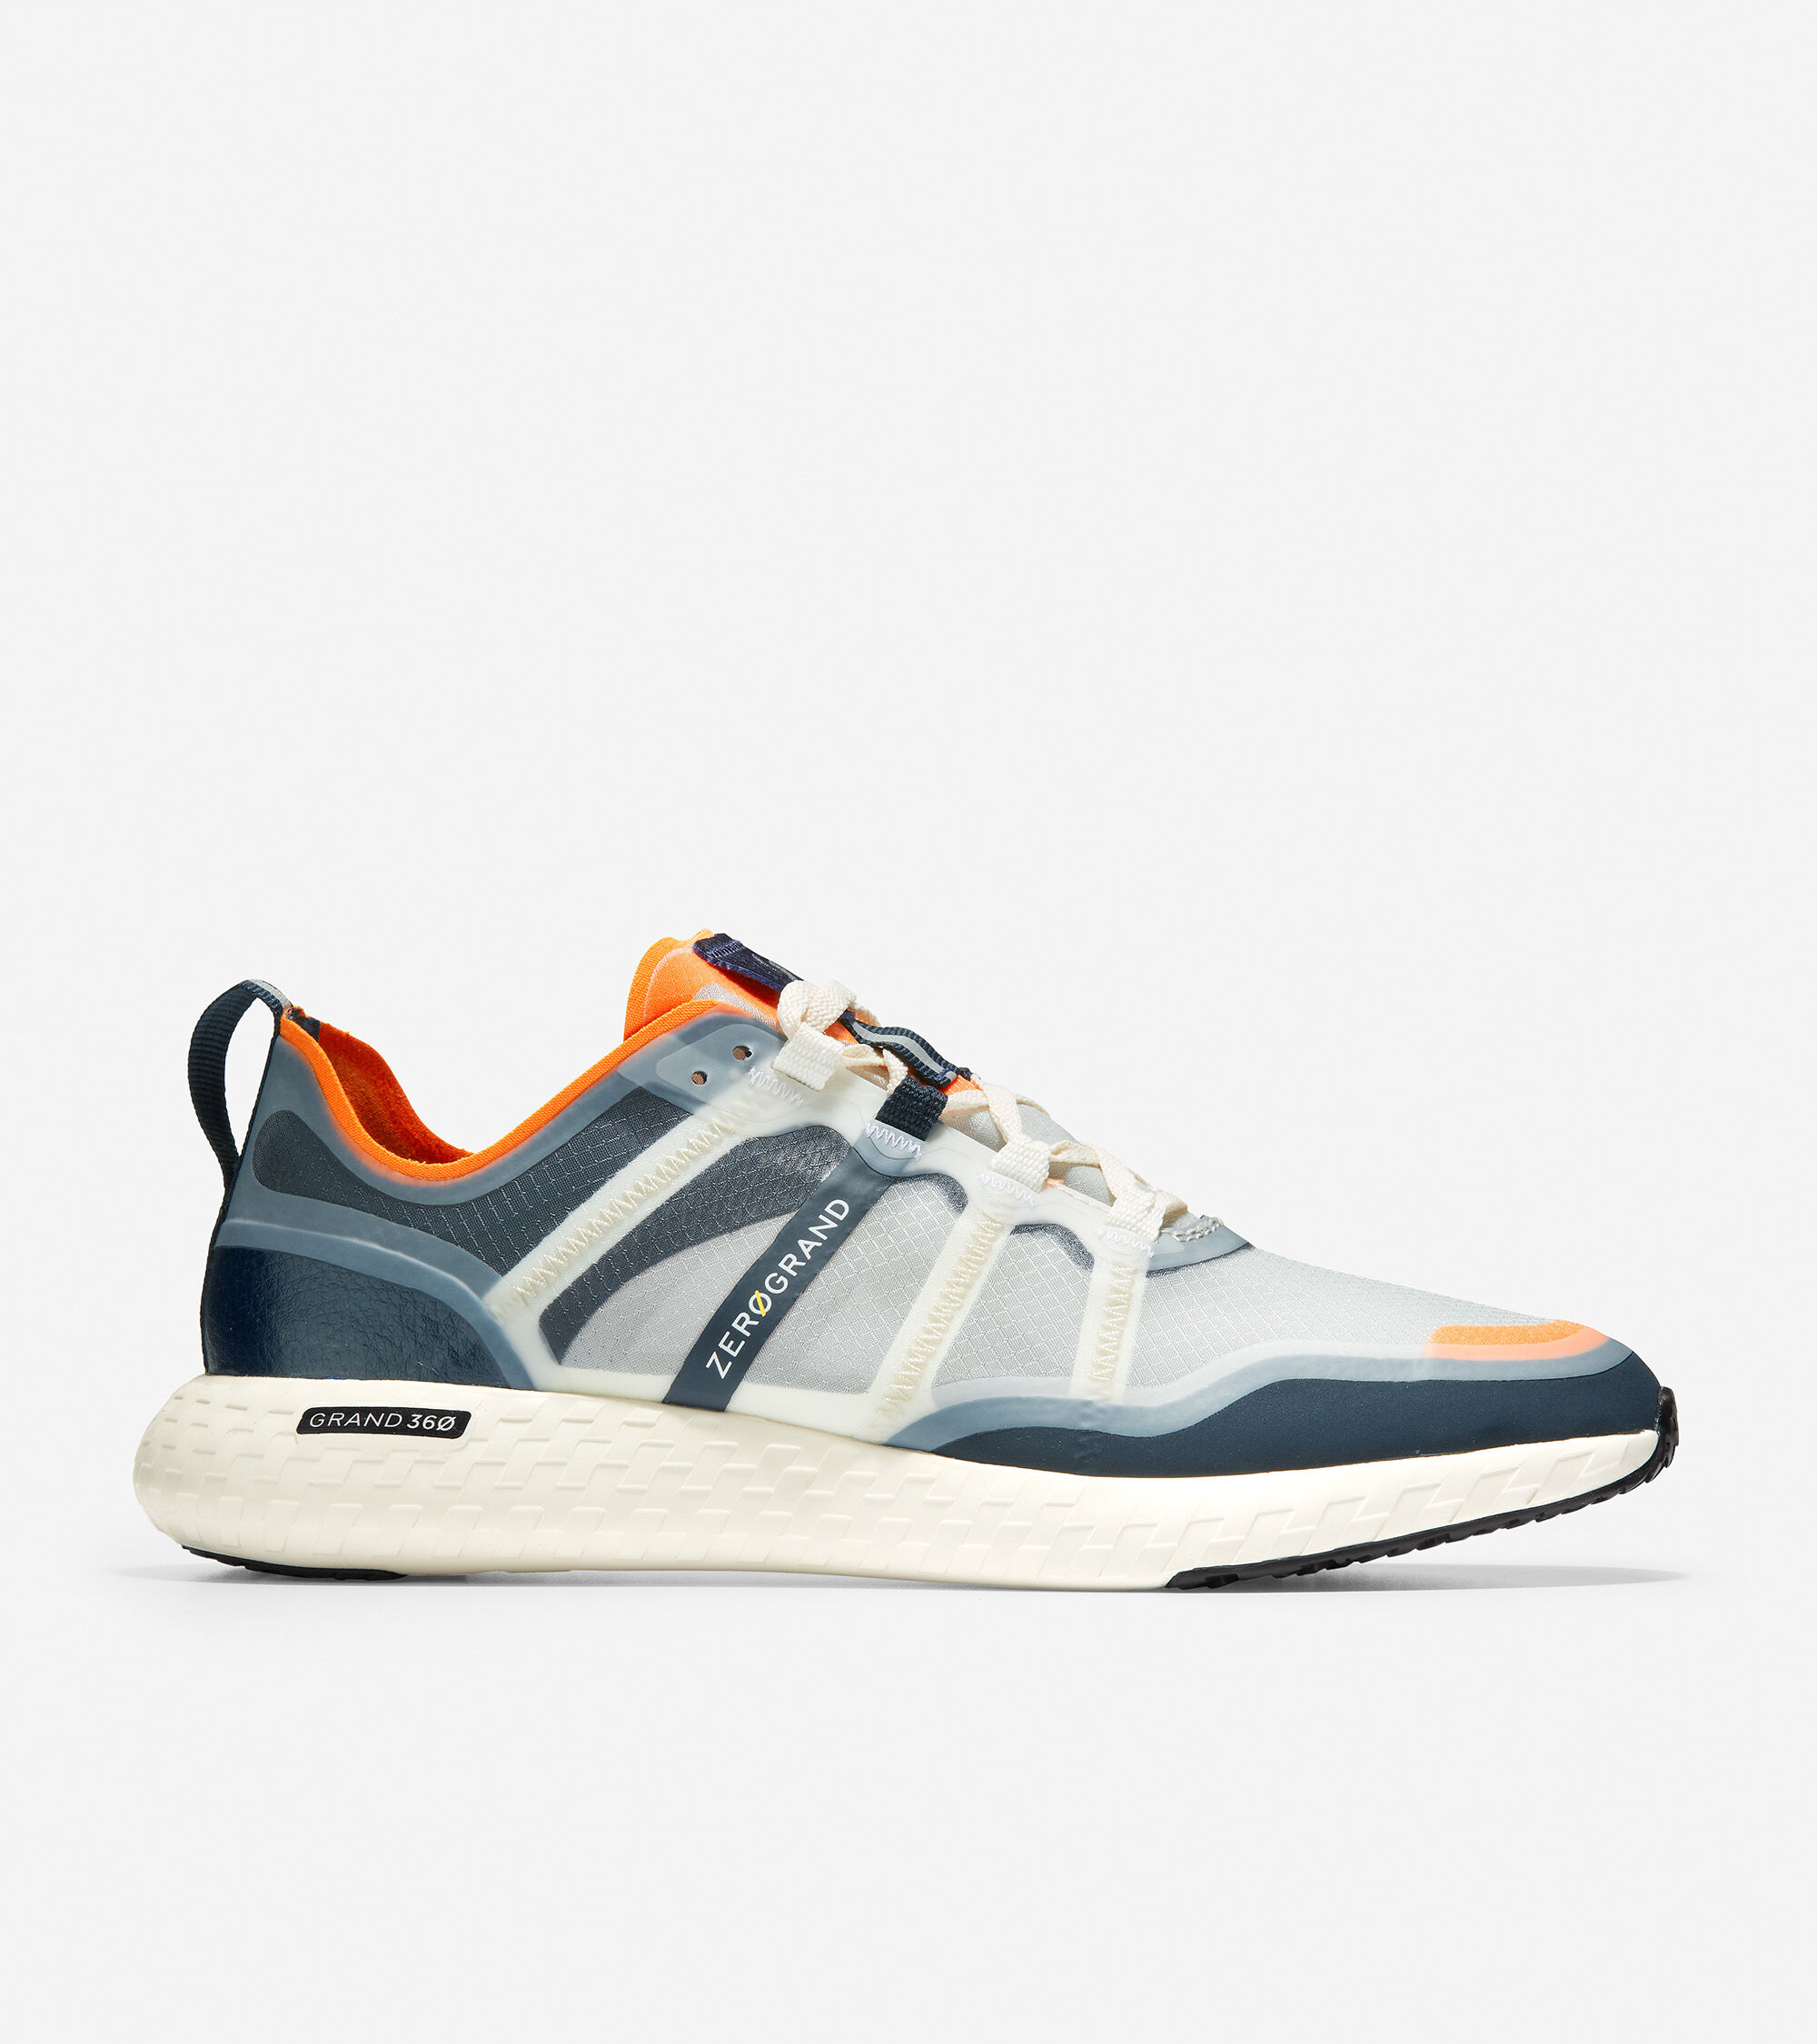 Outpace Running Shoe in Orange-Ivory